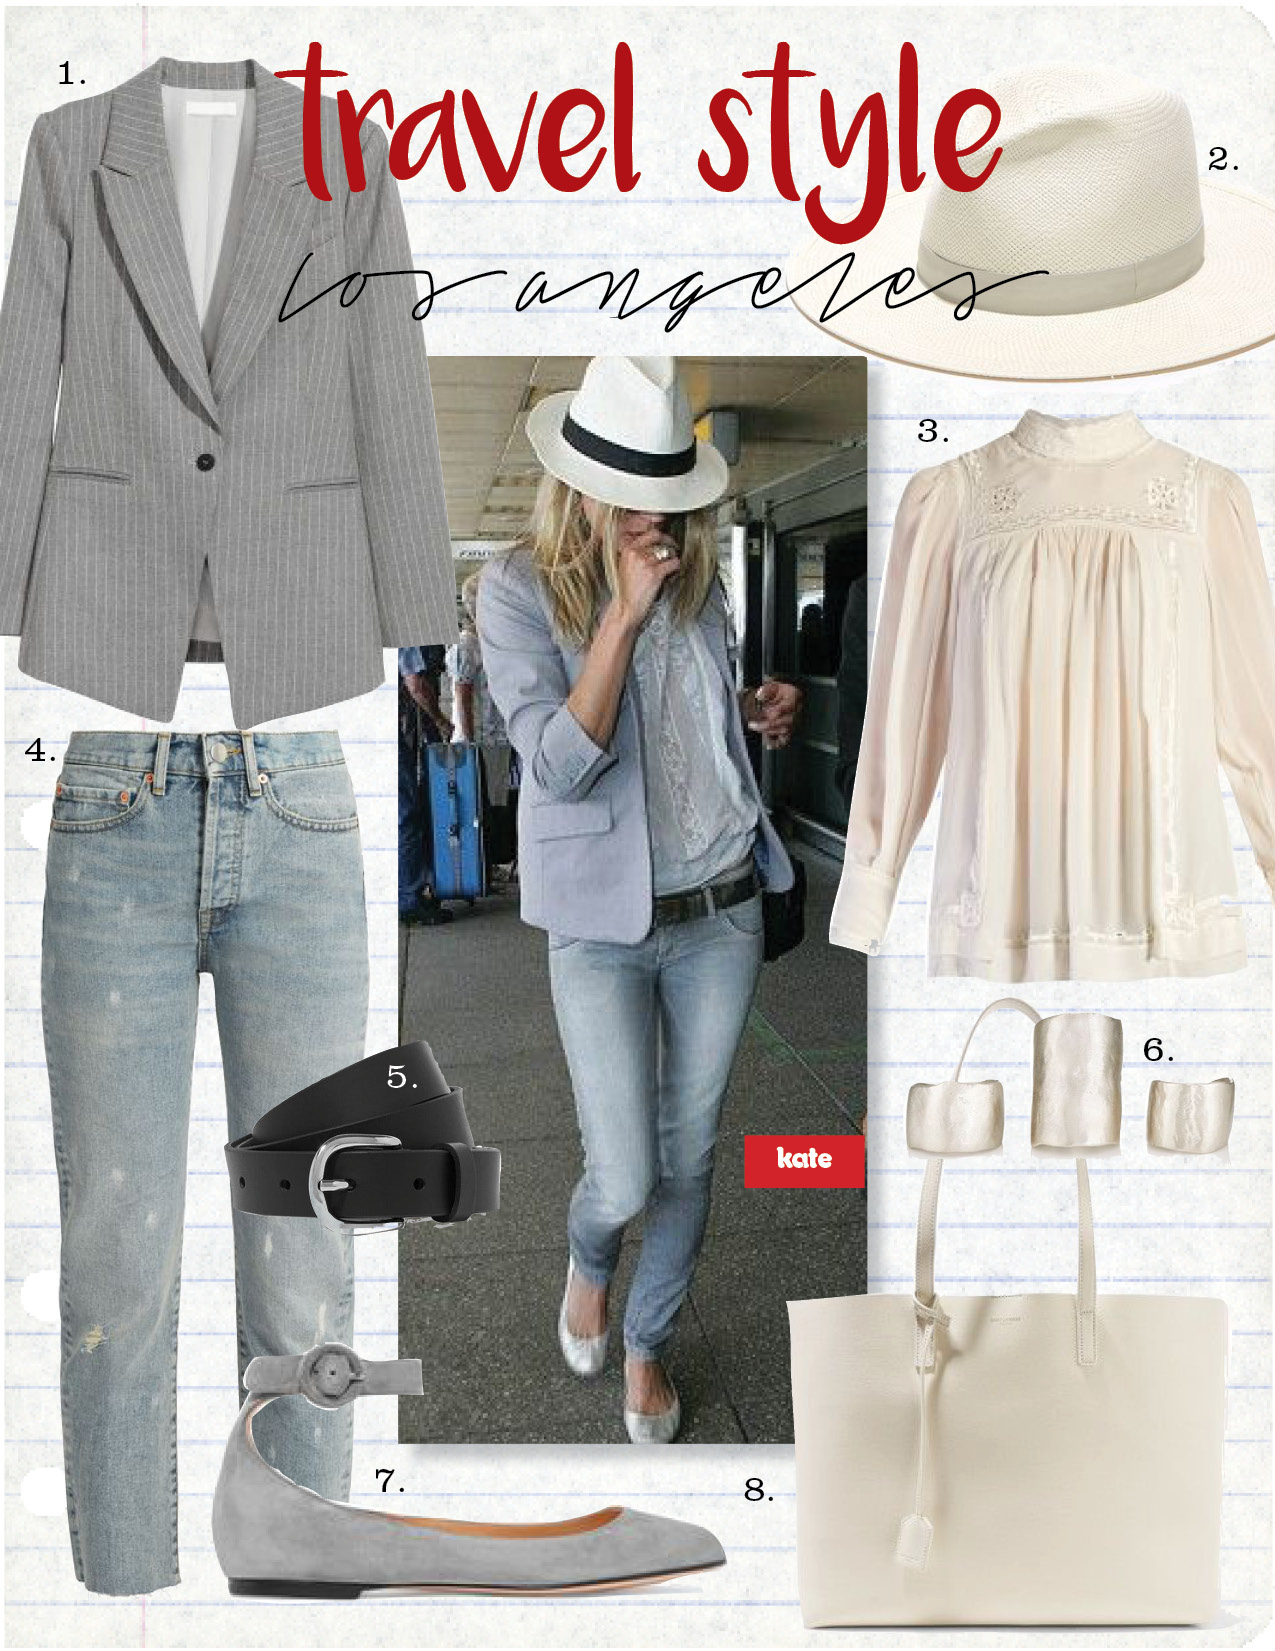 1. h&m long jacket, $49,  hm.com  2. janessa leone aisley straw hat, $250,  janessaleone.com  3. isabel marant maeva embroidered silk blouse, $731,  matchesfashion.com  4. raey unisex raw-hem jeans, $201,  matchesfashion.com  5. etoile isabel marant zap leather belt, $115,  net-a-porter.com  6. simon miller x rebecca pinto ogee ring set, $470,  barneys.com  7. gianvito rossi suede ballet flats, $695,  net-a-porter.com  8. saint laurent shopping large textured-leather tote, $995,  net-a-porter.com